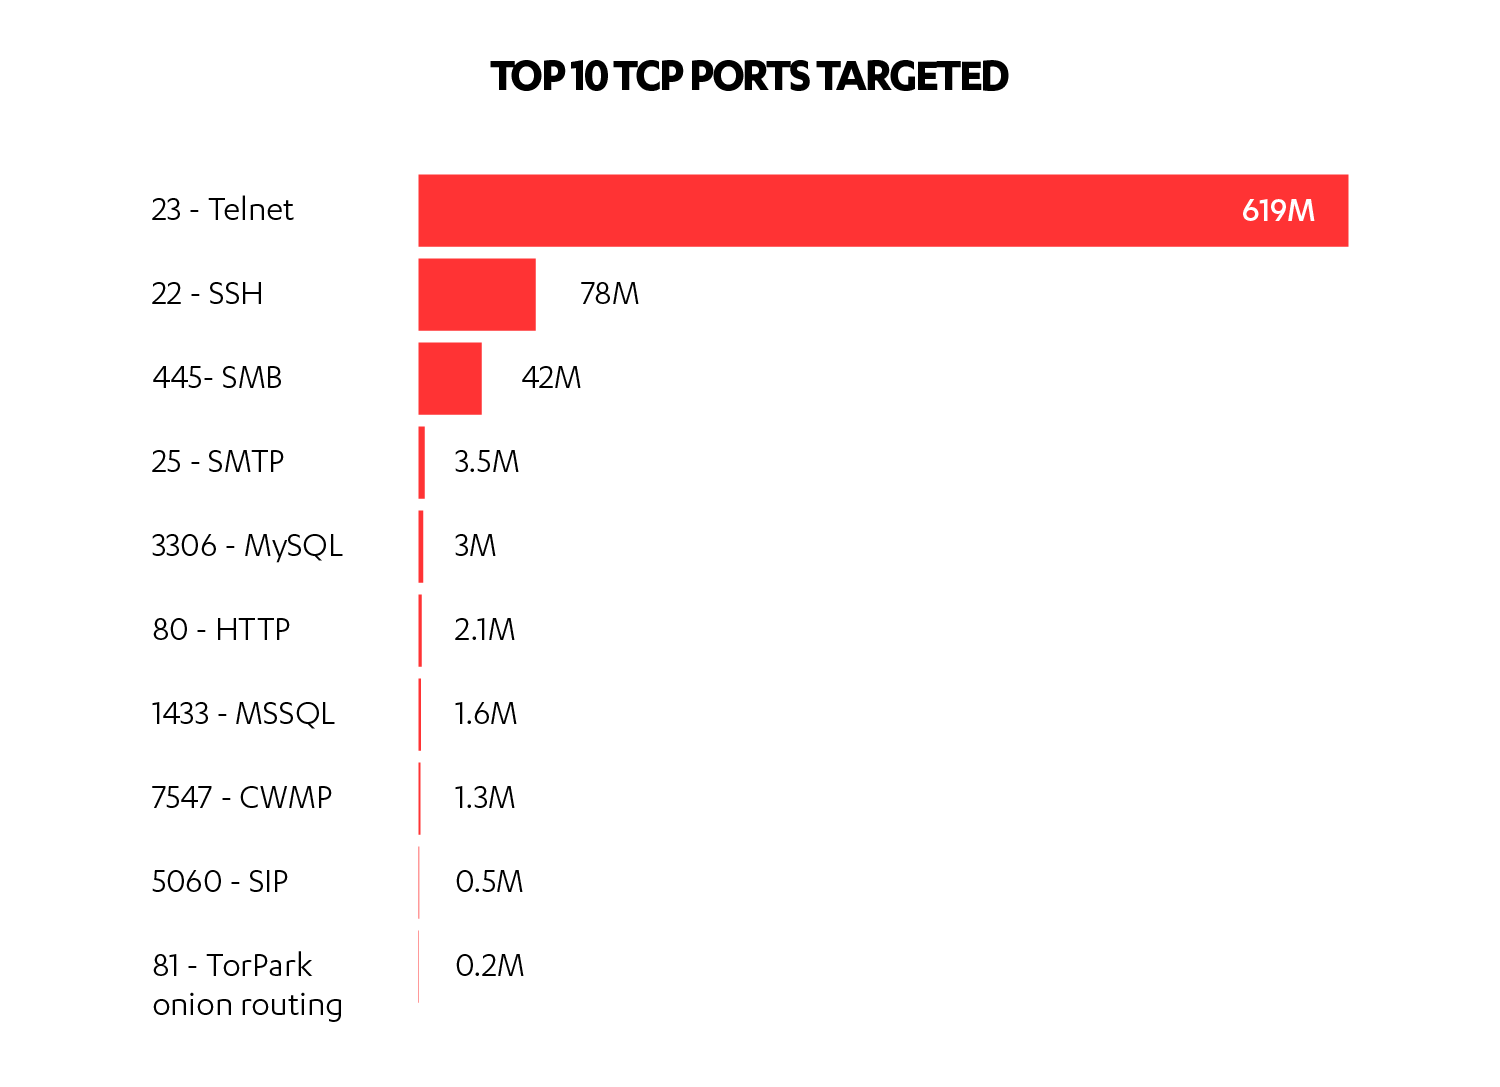 Top TCP ports targeted